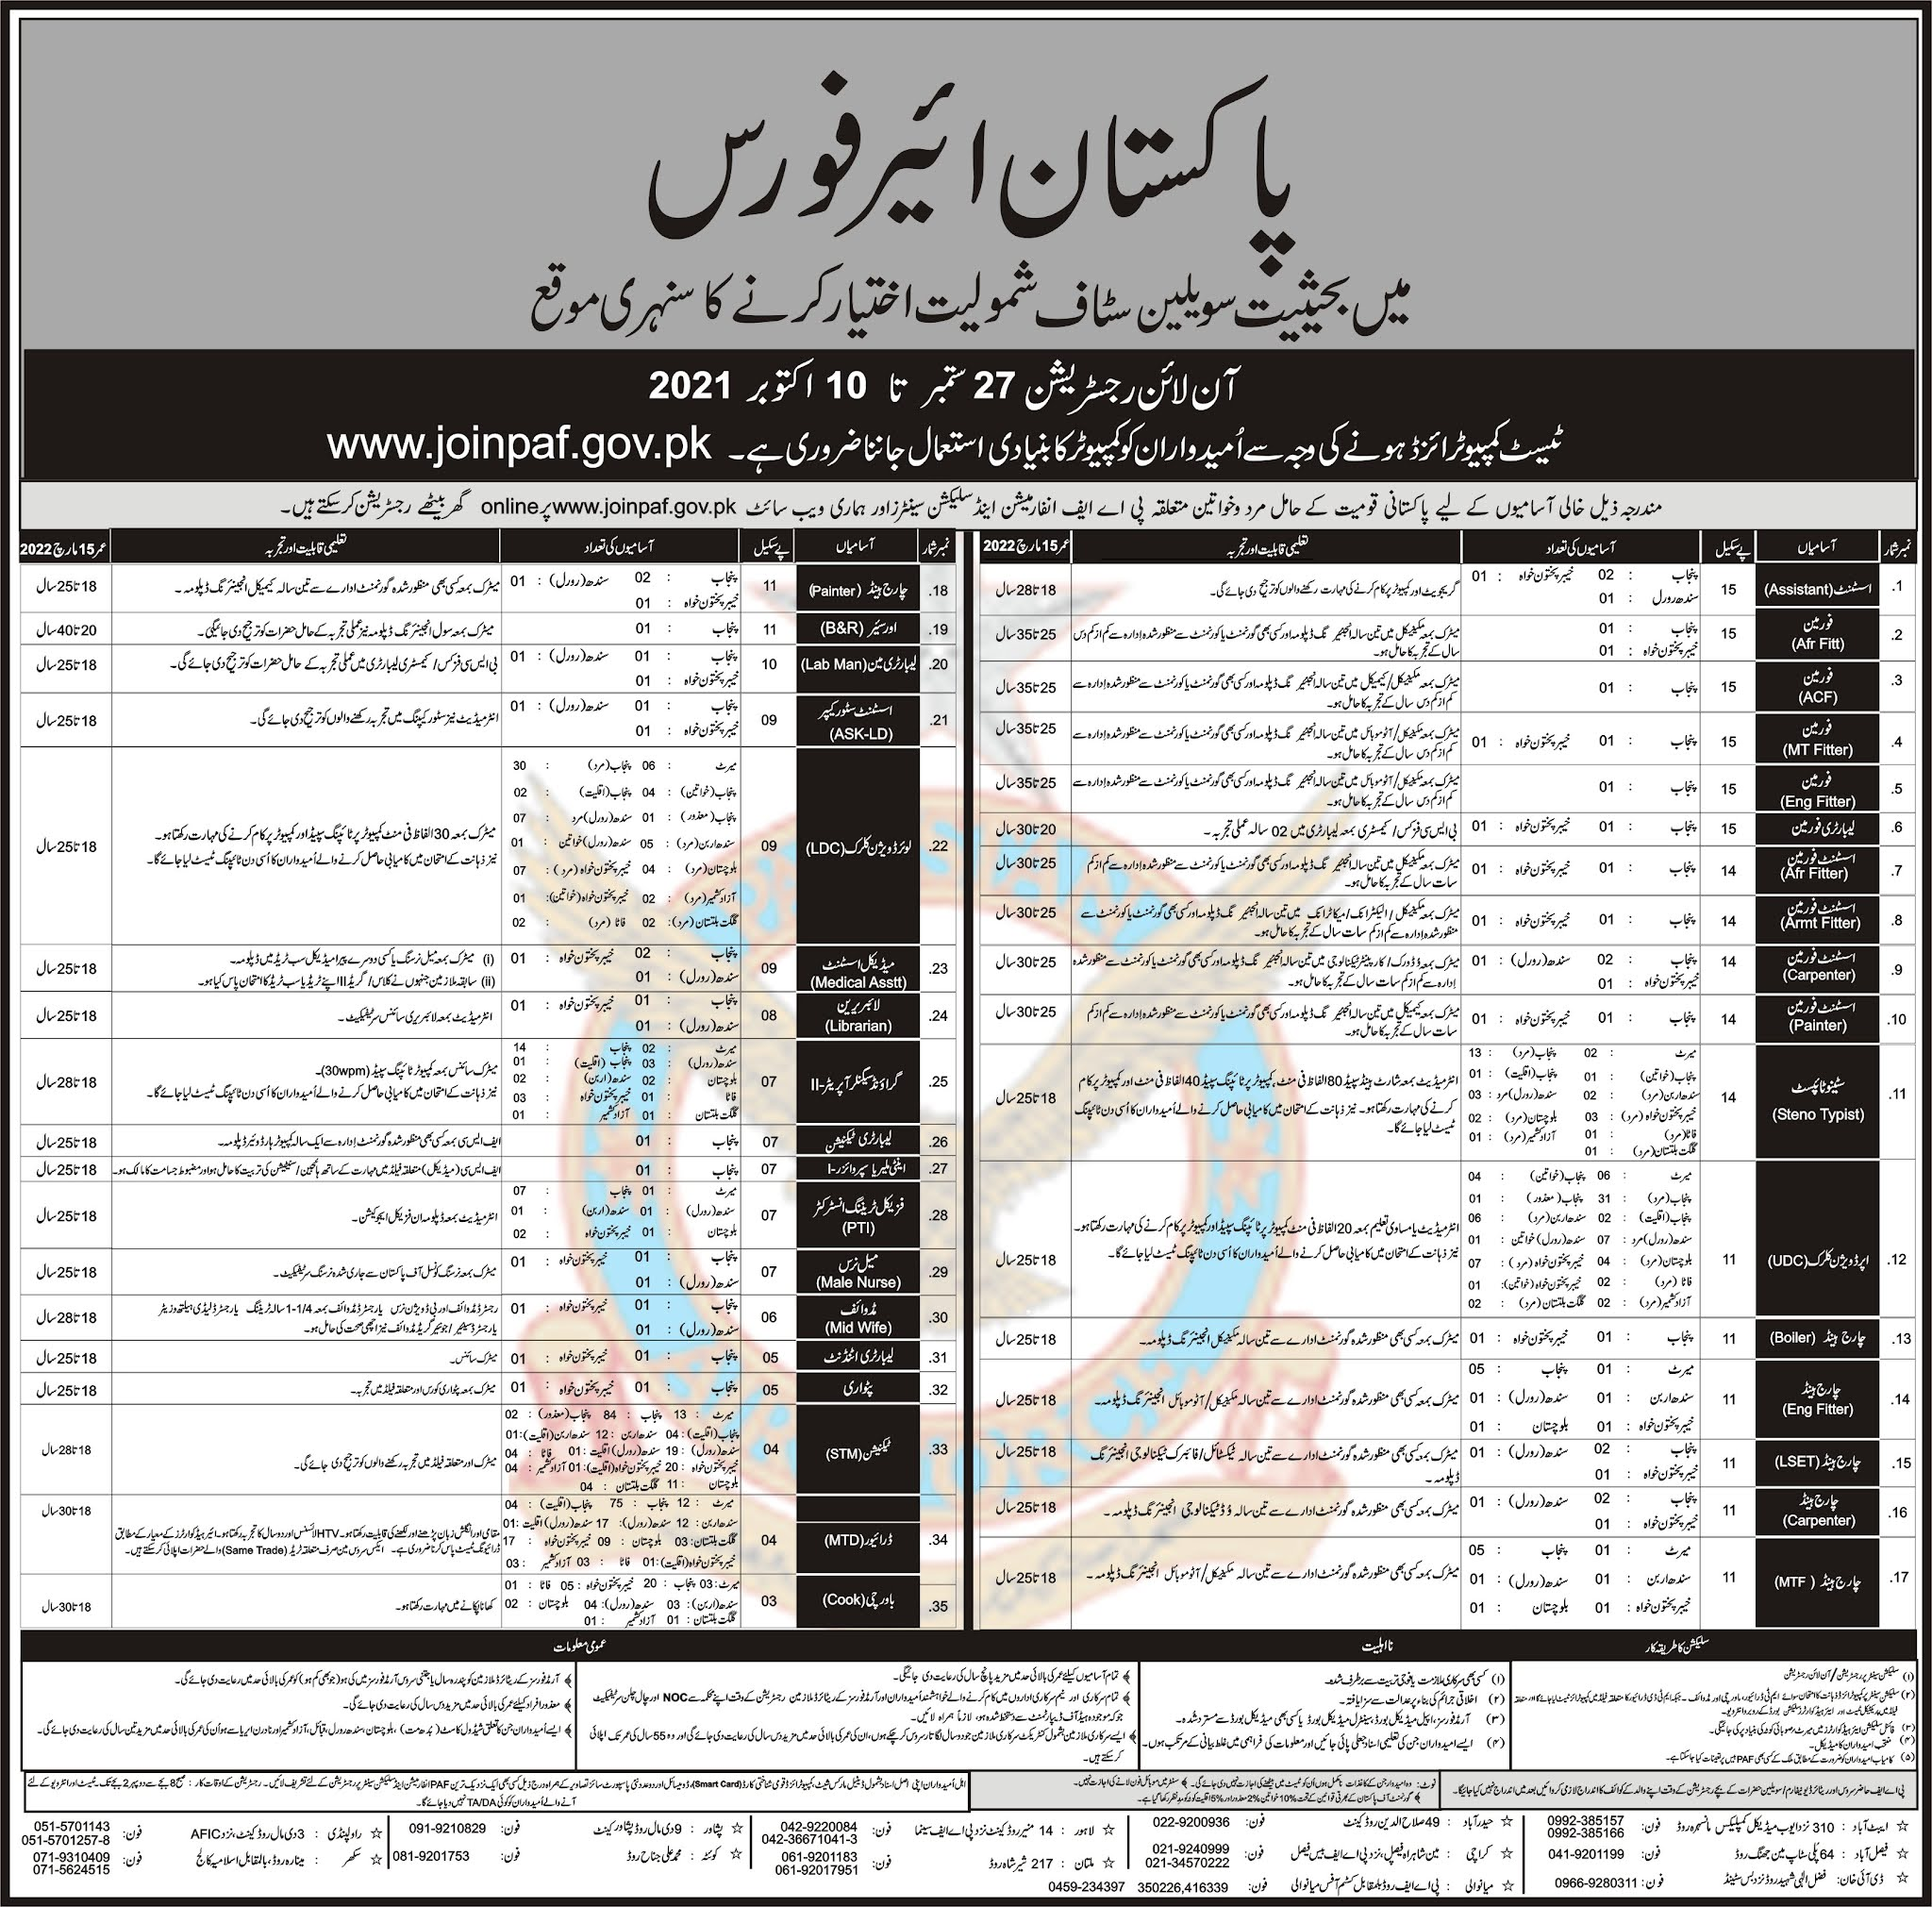 Join Pakistan Air Force PAF Jobs 2021 – Online Apply www.joinpaf.gov.pk